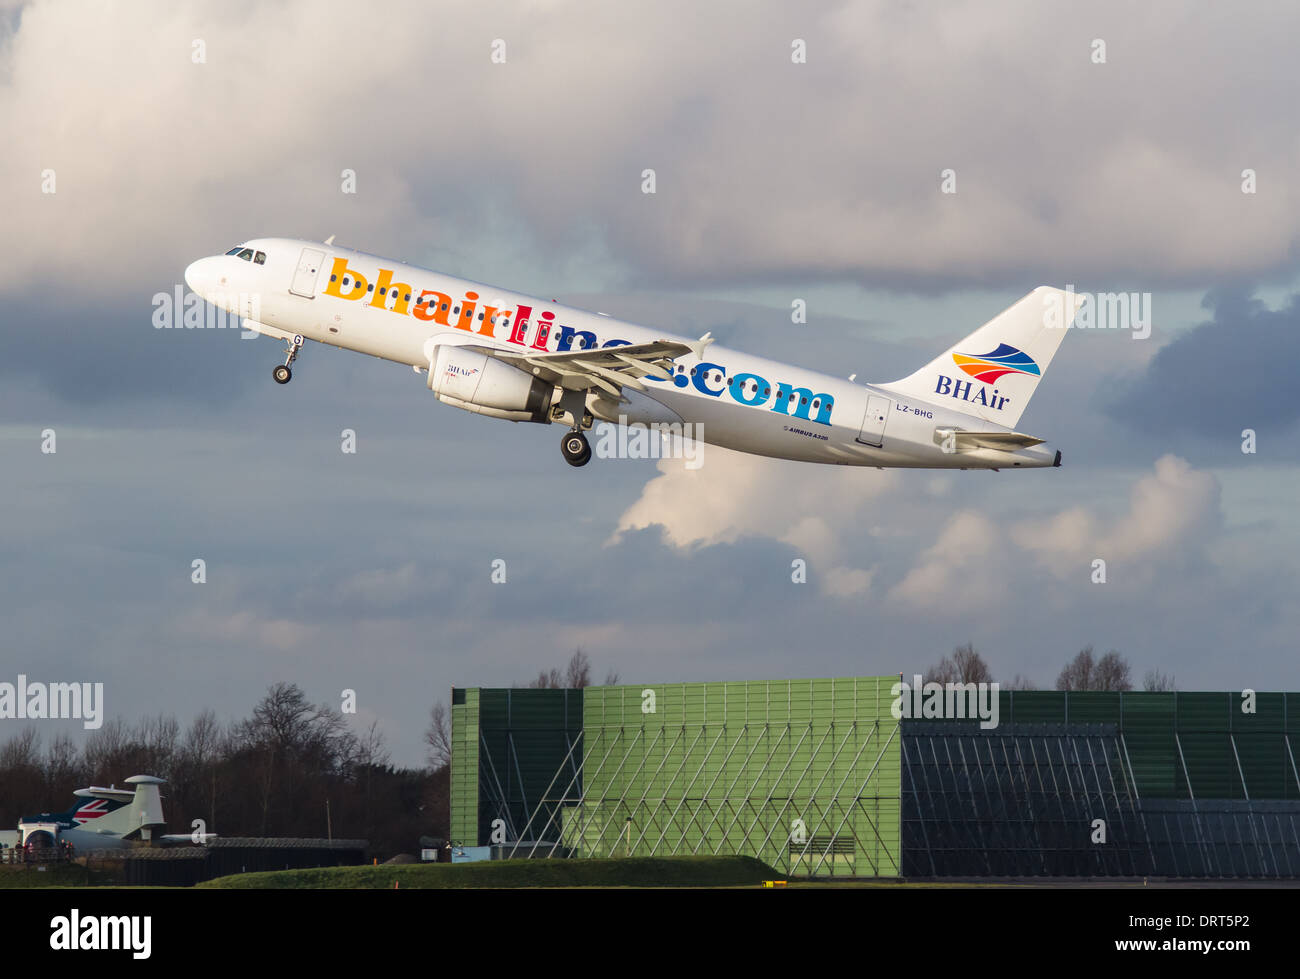 Balkan Holidays Airbus A320 -232 LZ-BHG taking off from Manchester Airport - Stock Image